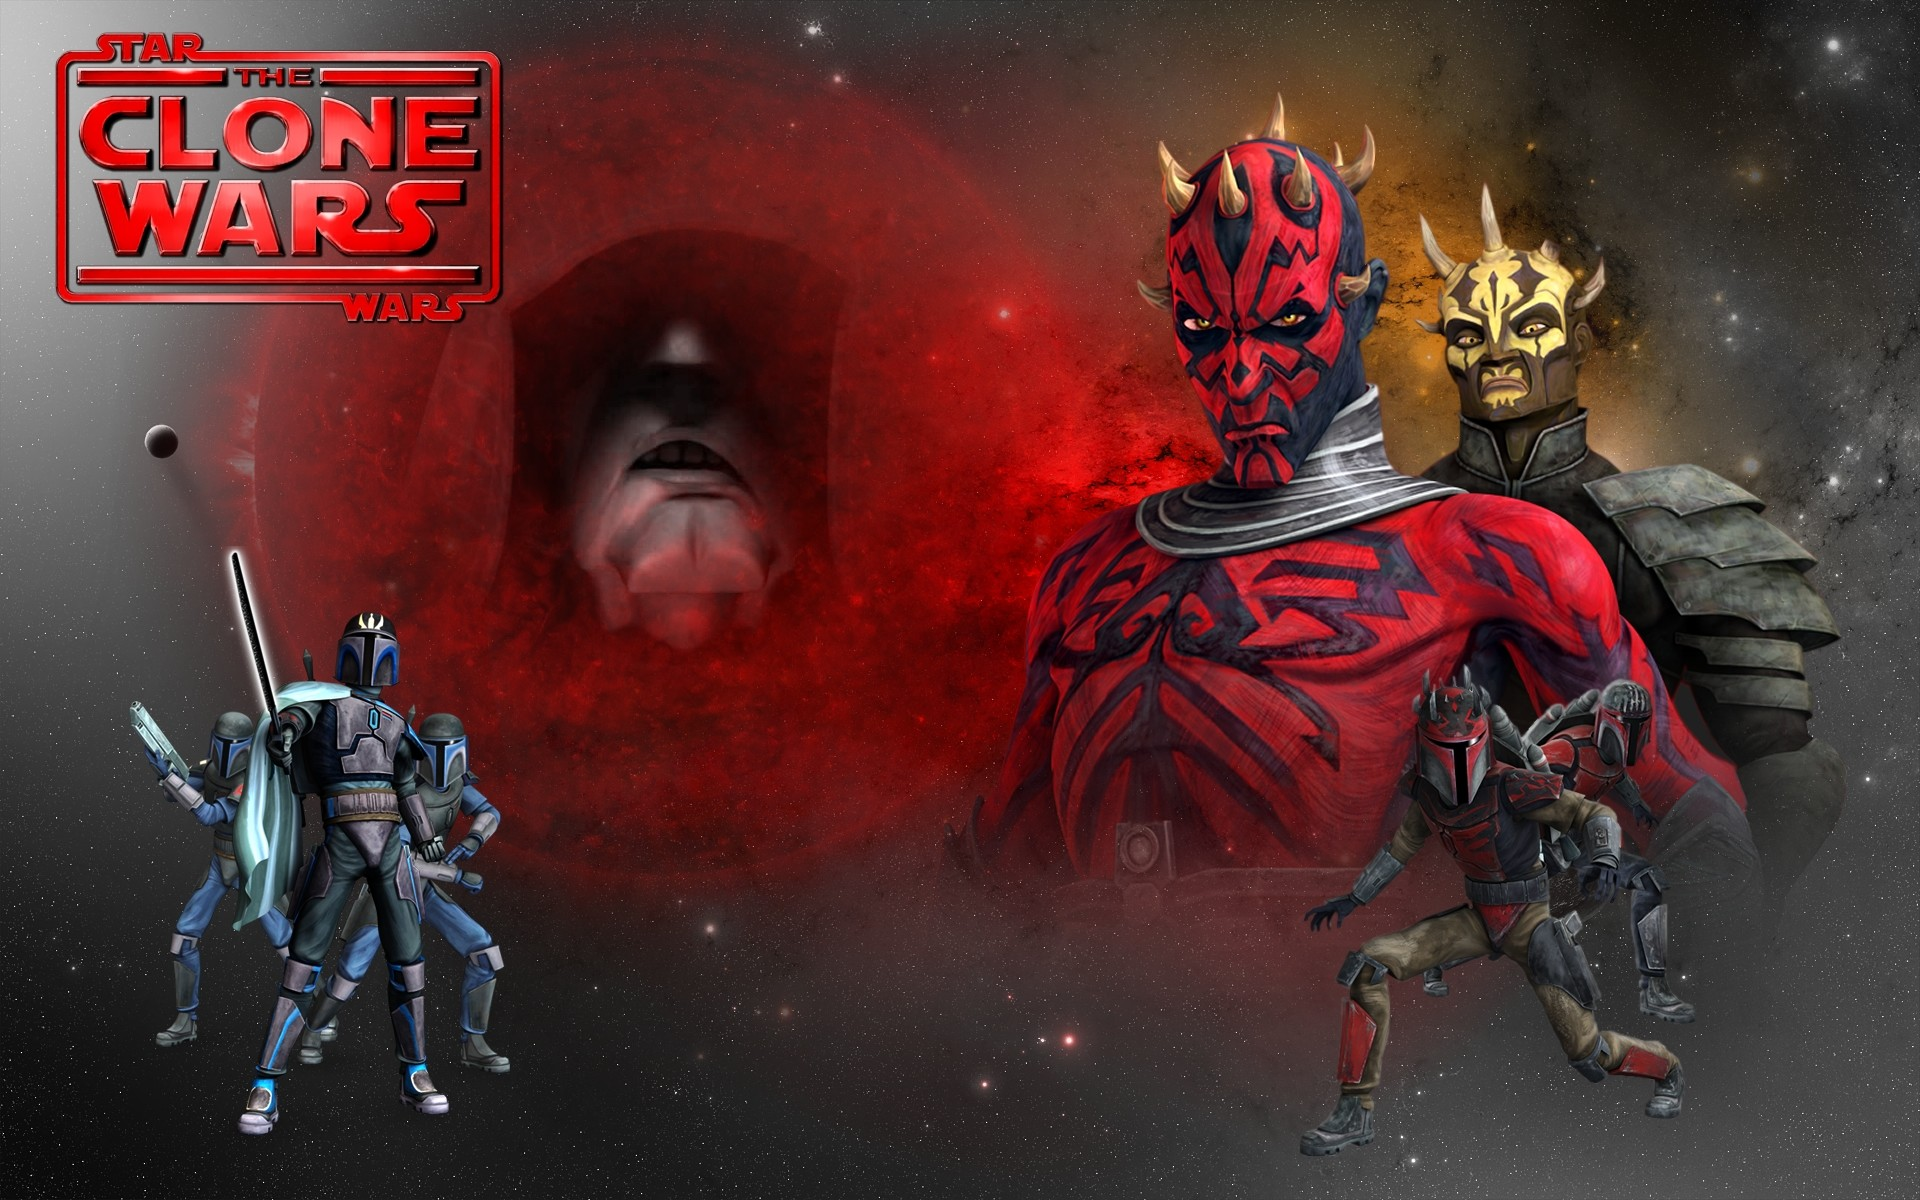 1920x1200 ... Clone wars - Maul, Savage wallpaper by LordRadim